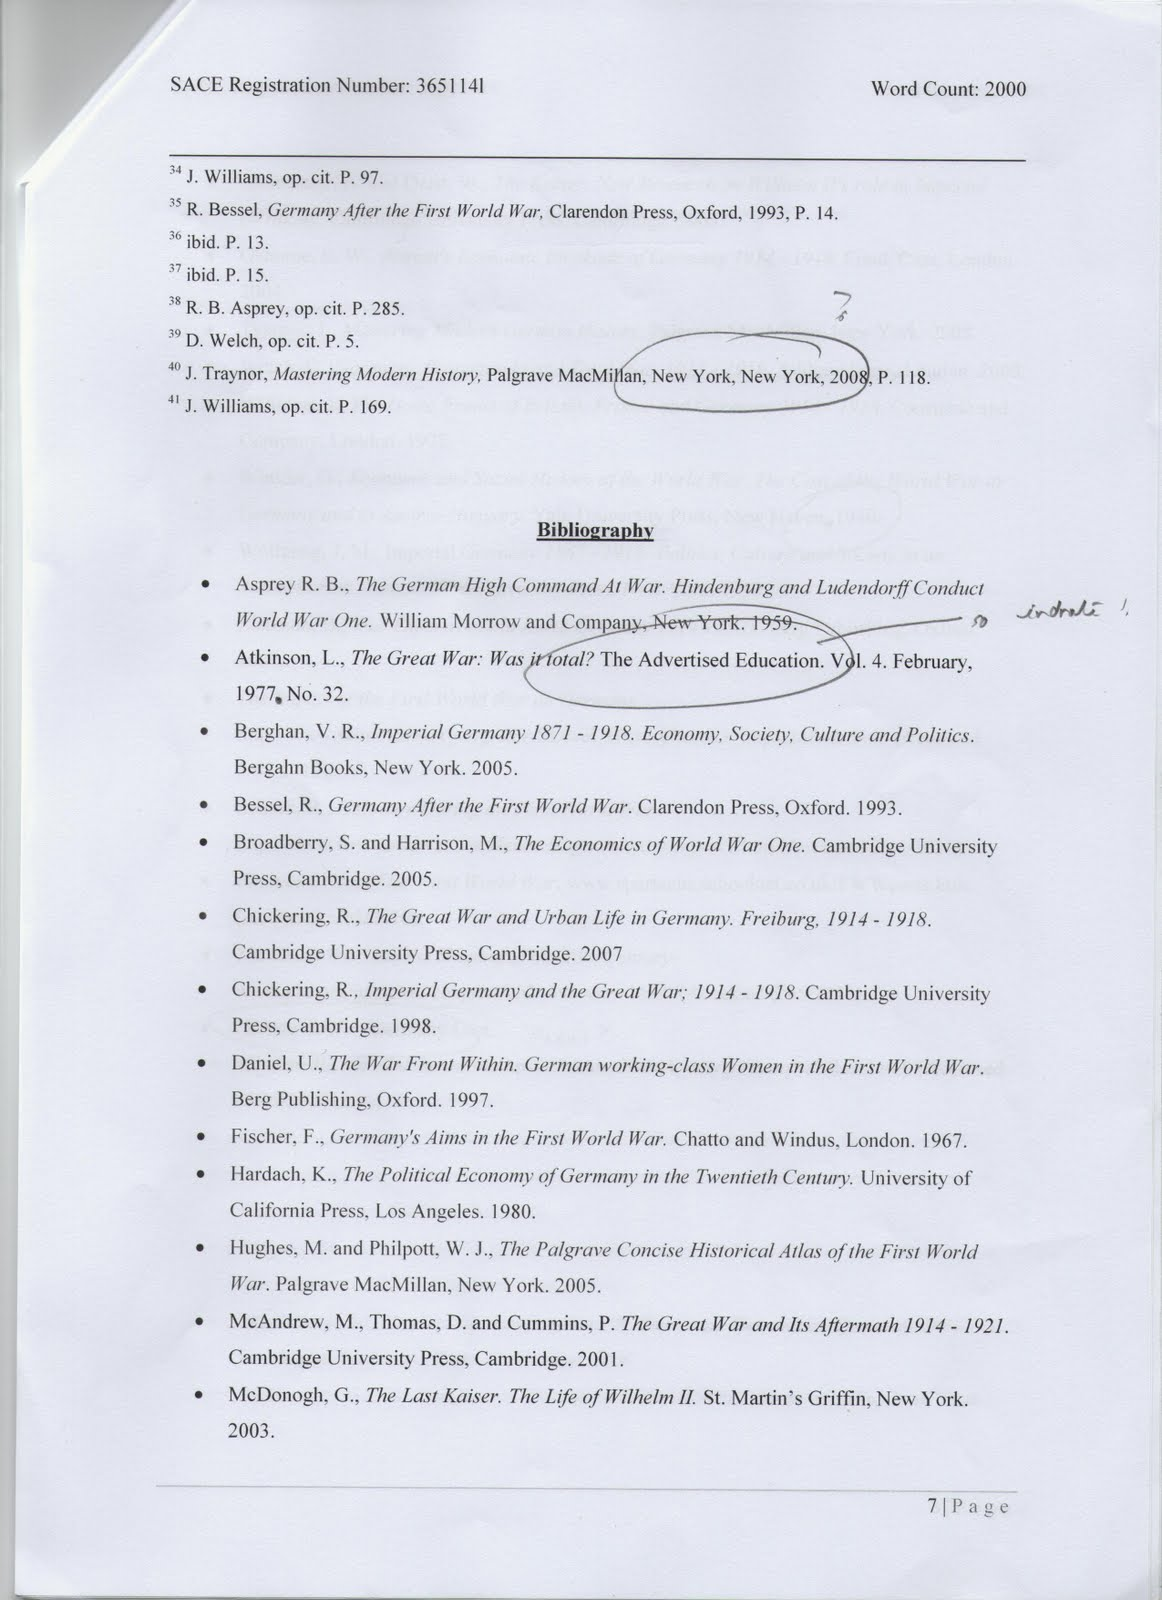 016 Endnotes2bbibliography1 Uchicago Essays Essay Astounding Law That Worked Length Reddit Full